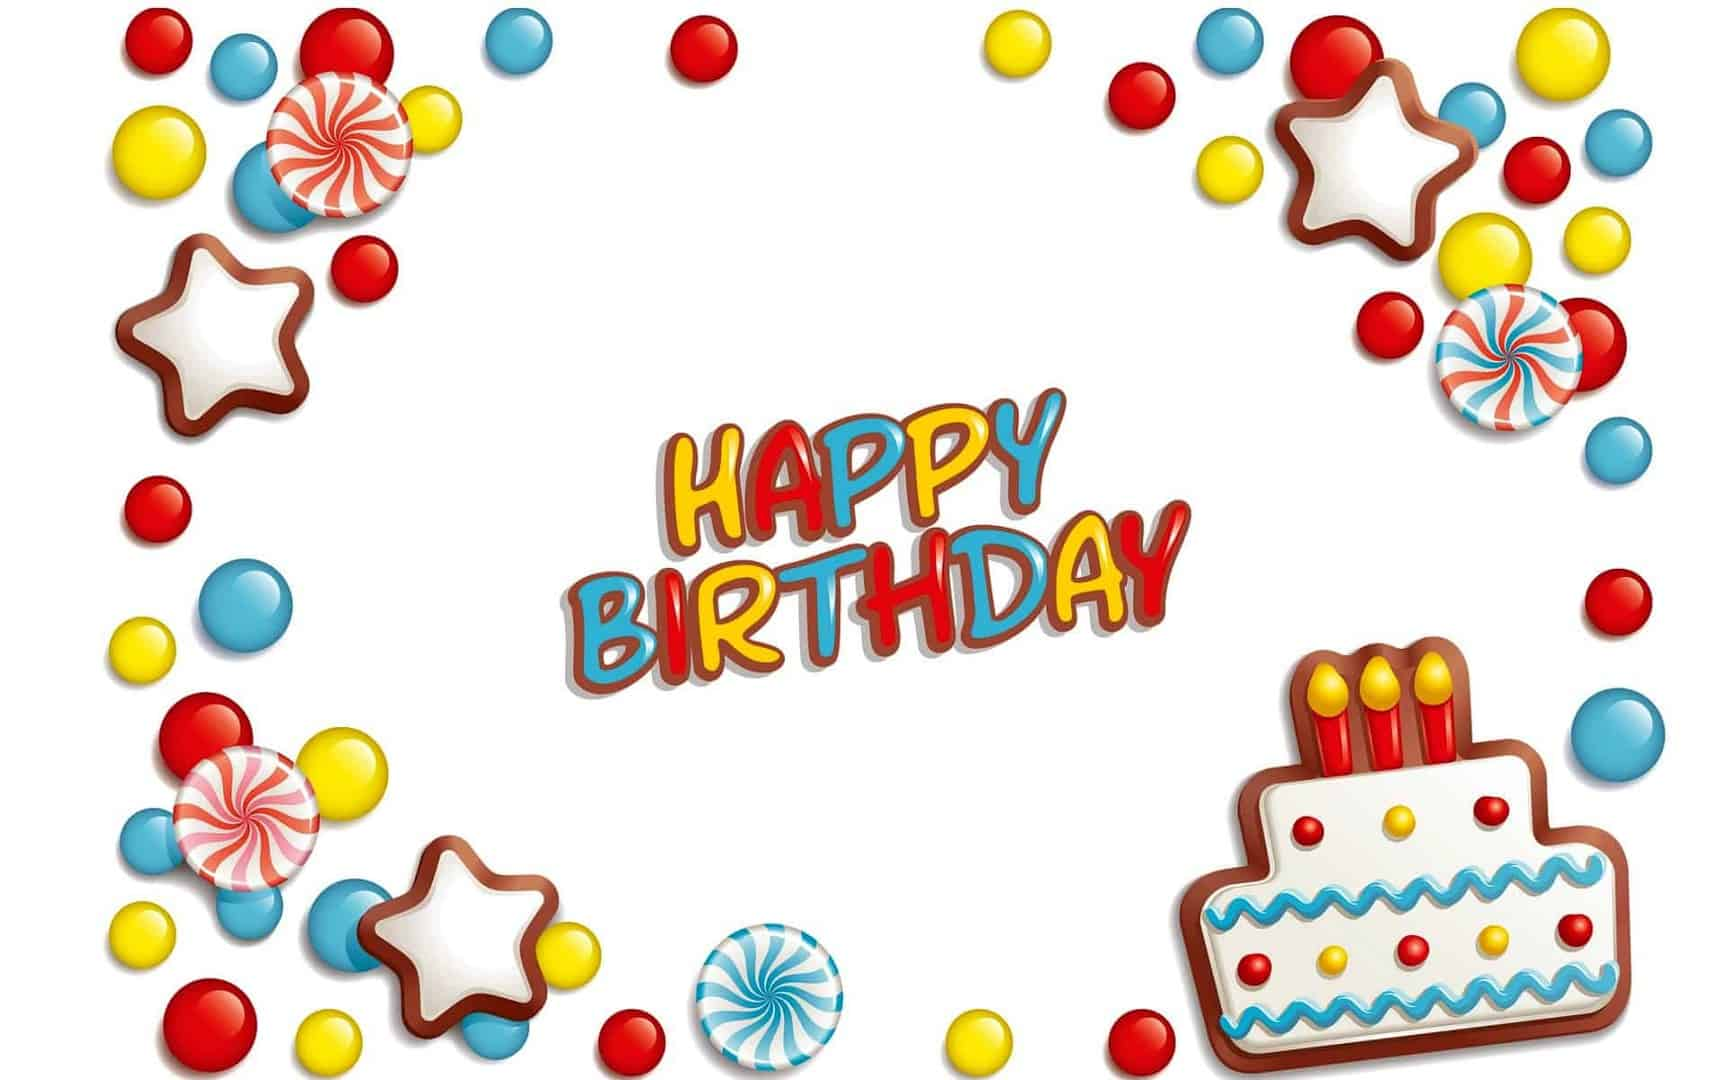 Animated birthday wishes images gif happy birthday to you happy awesome birthday kristyandbryce Gallery